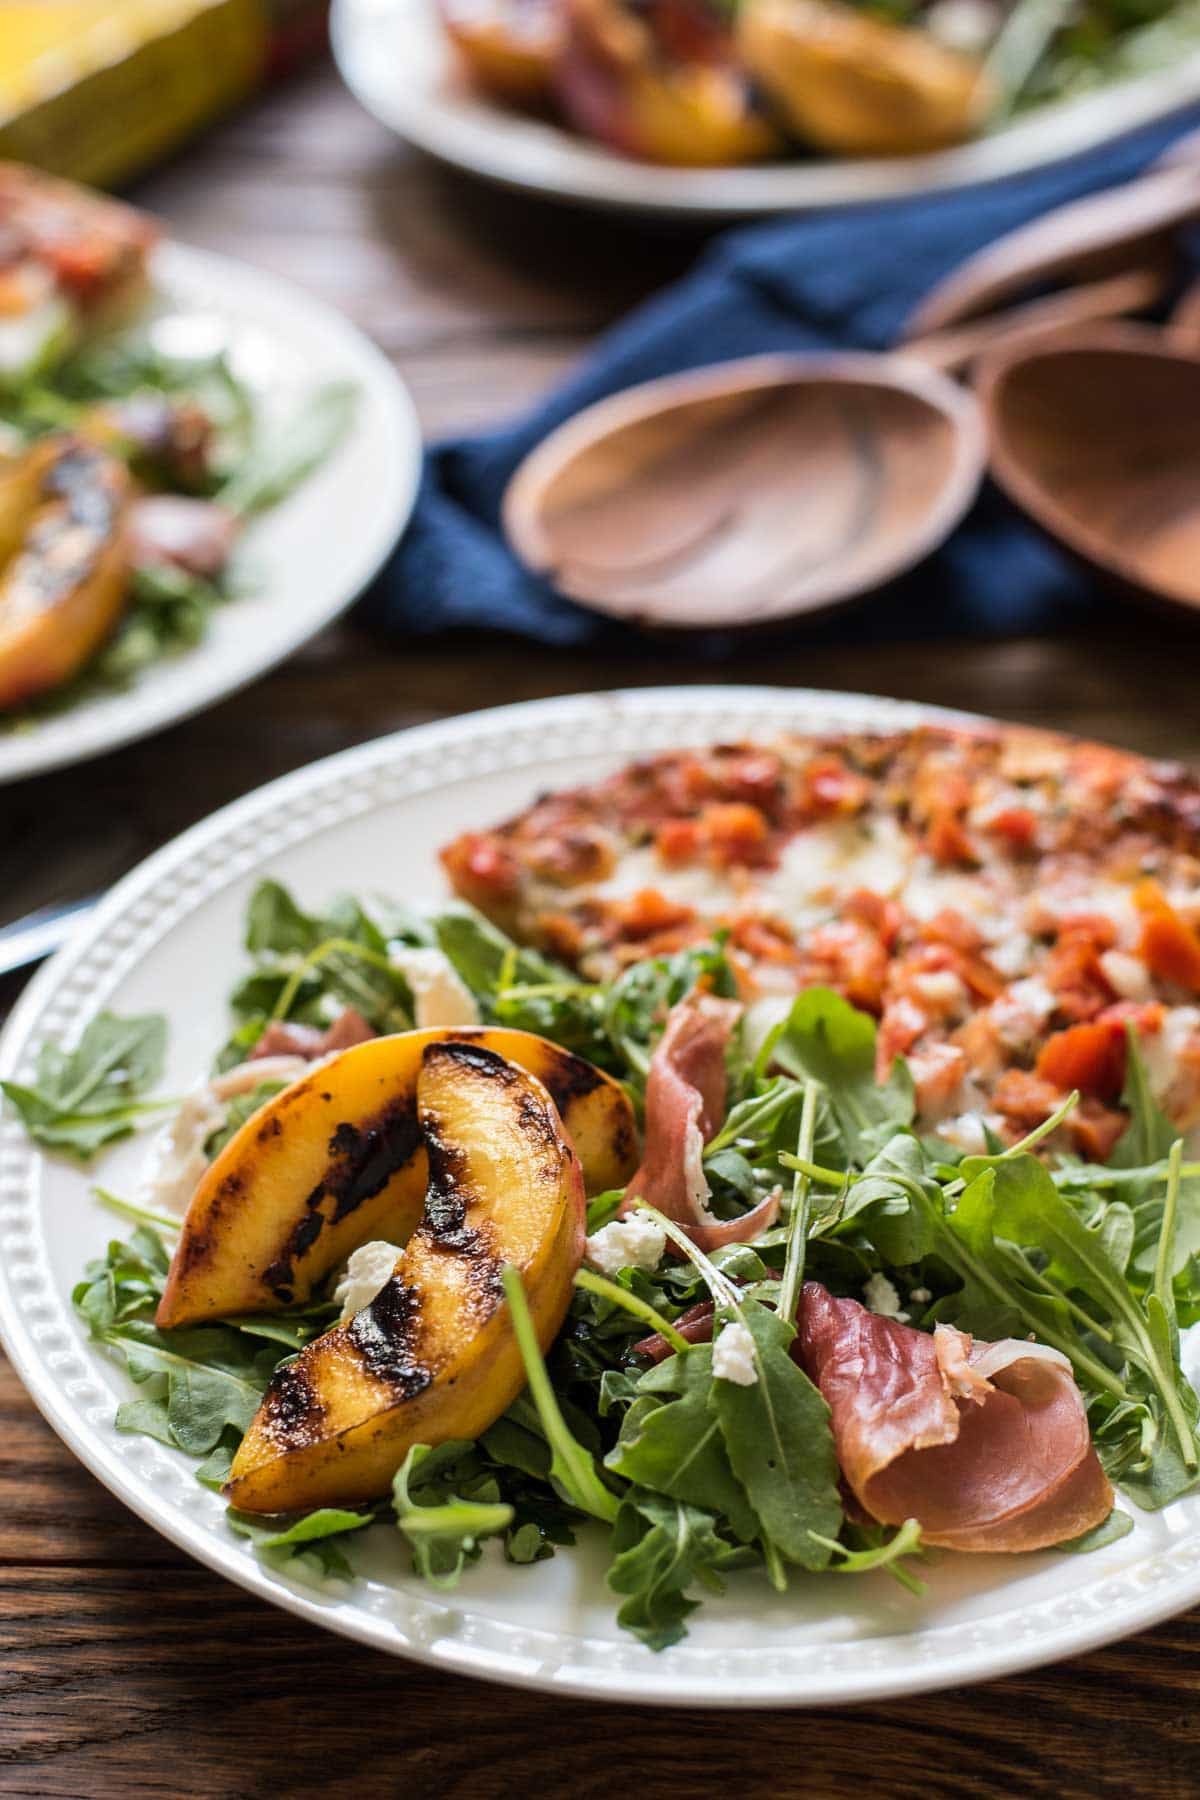 Grilled Peach and Arugula Salad with Prosciutto